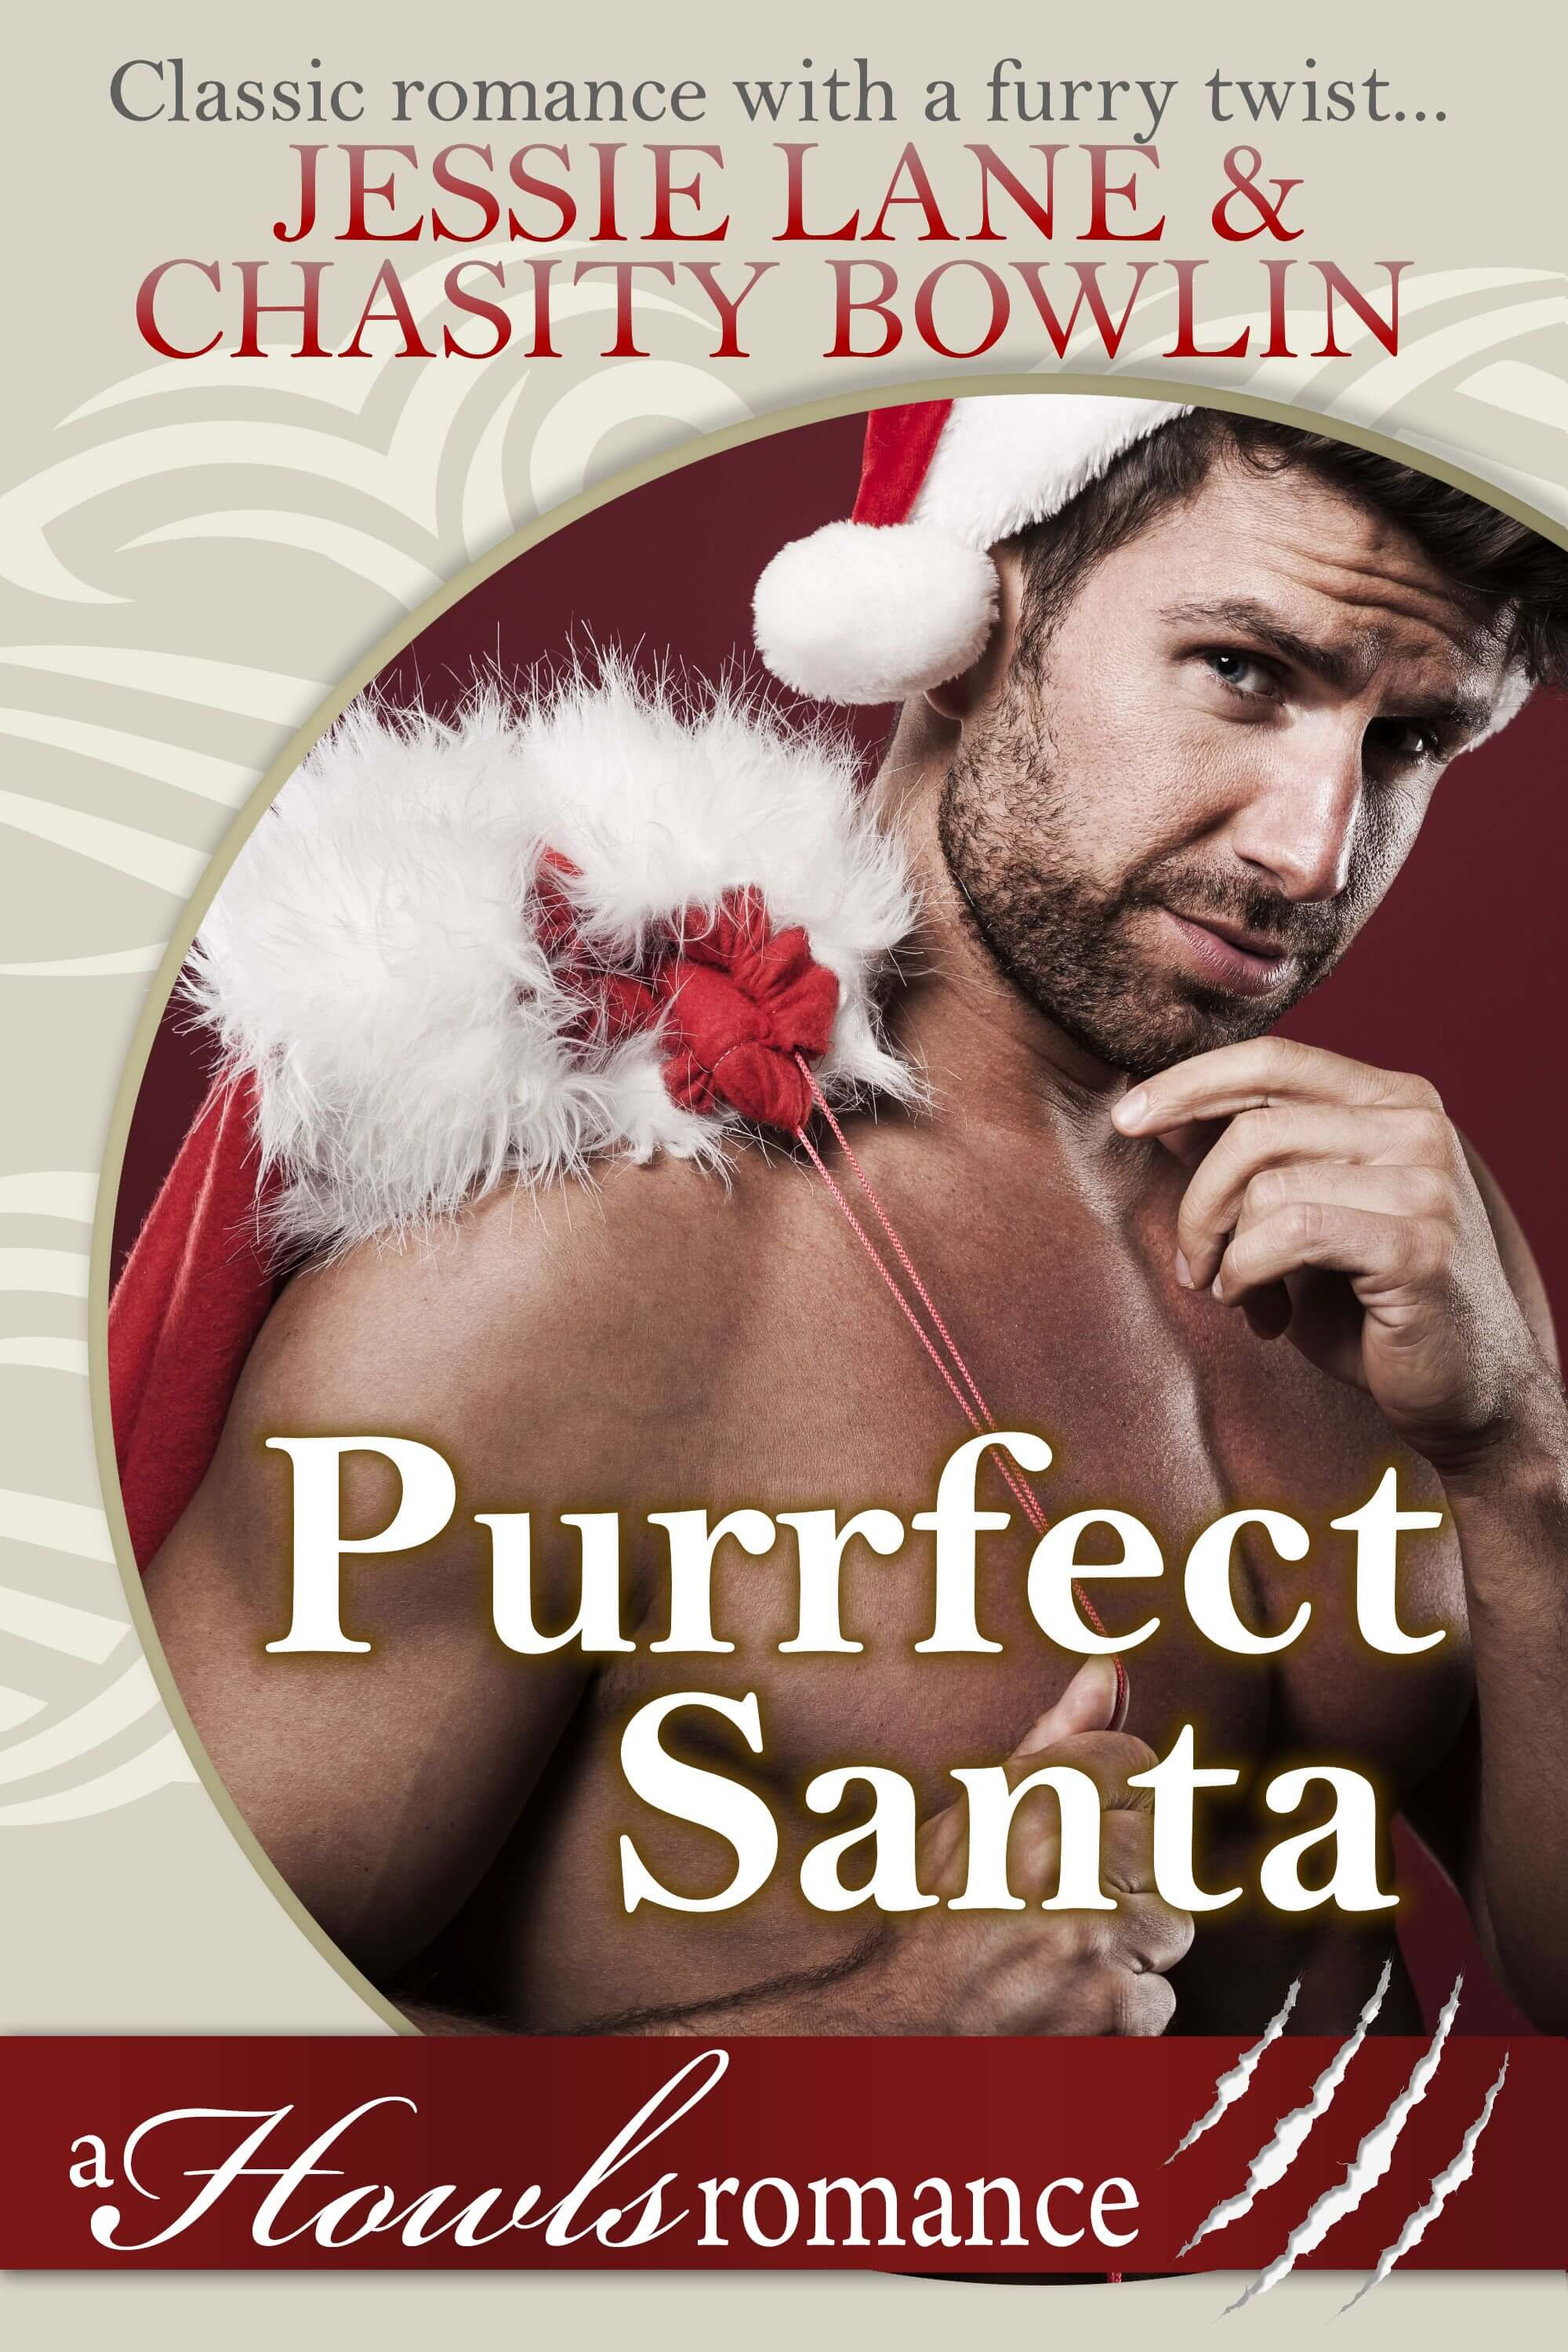 Purrfect Santa by Jessie Lane and Chasity Bowlin